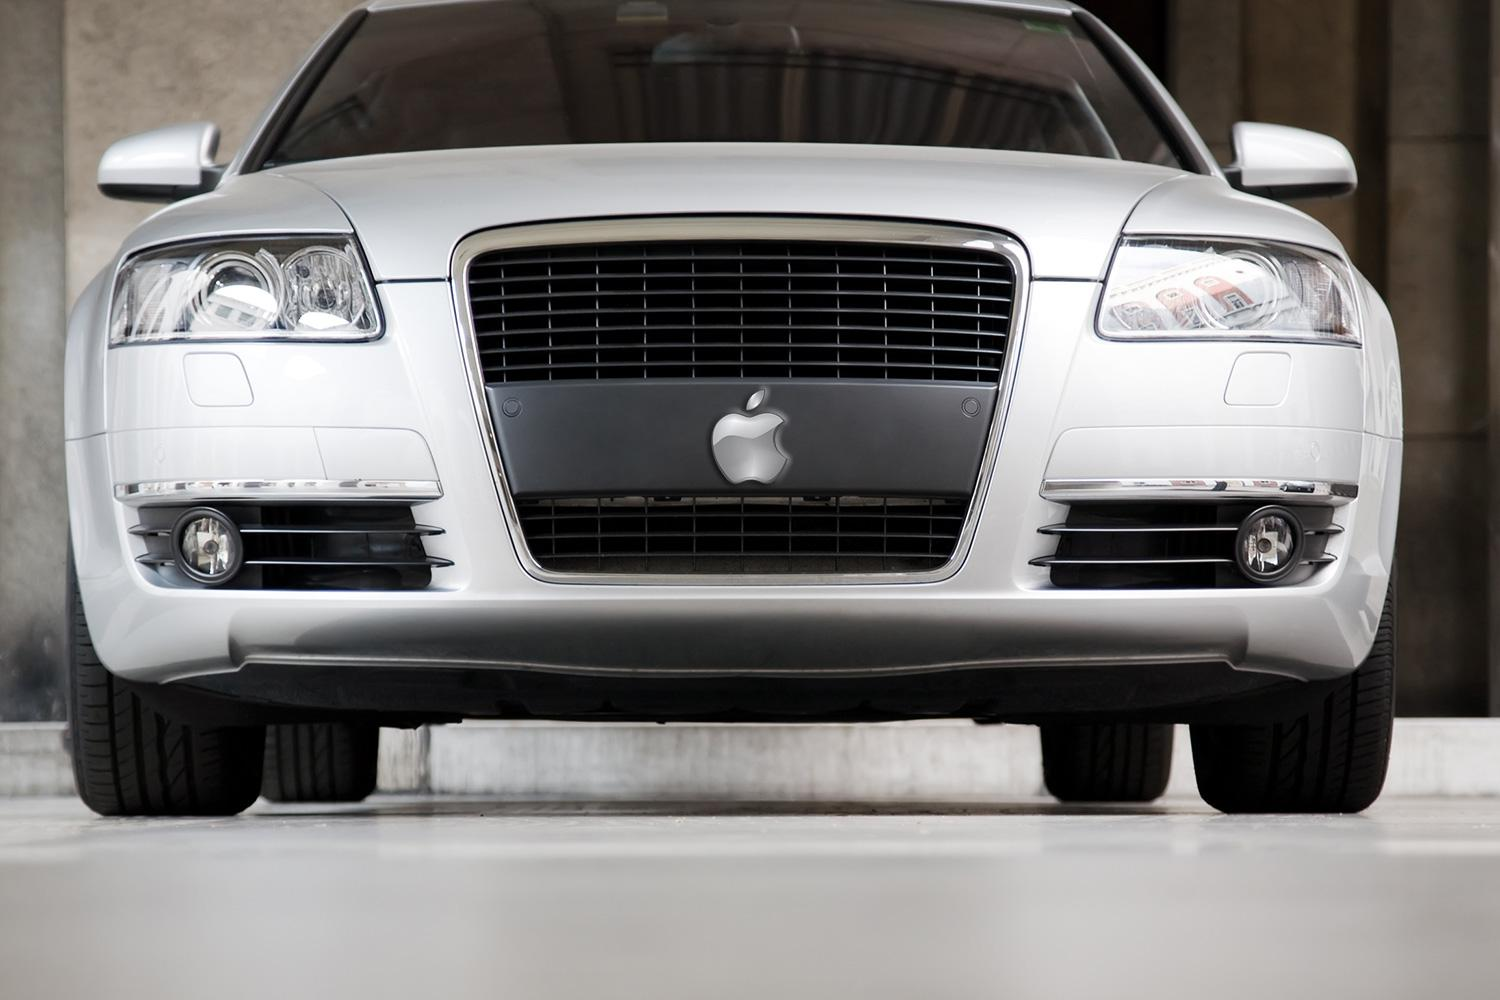 2019 Cars: Apple's Electric Car May Hit The Road In 2019